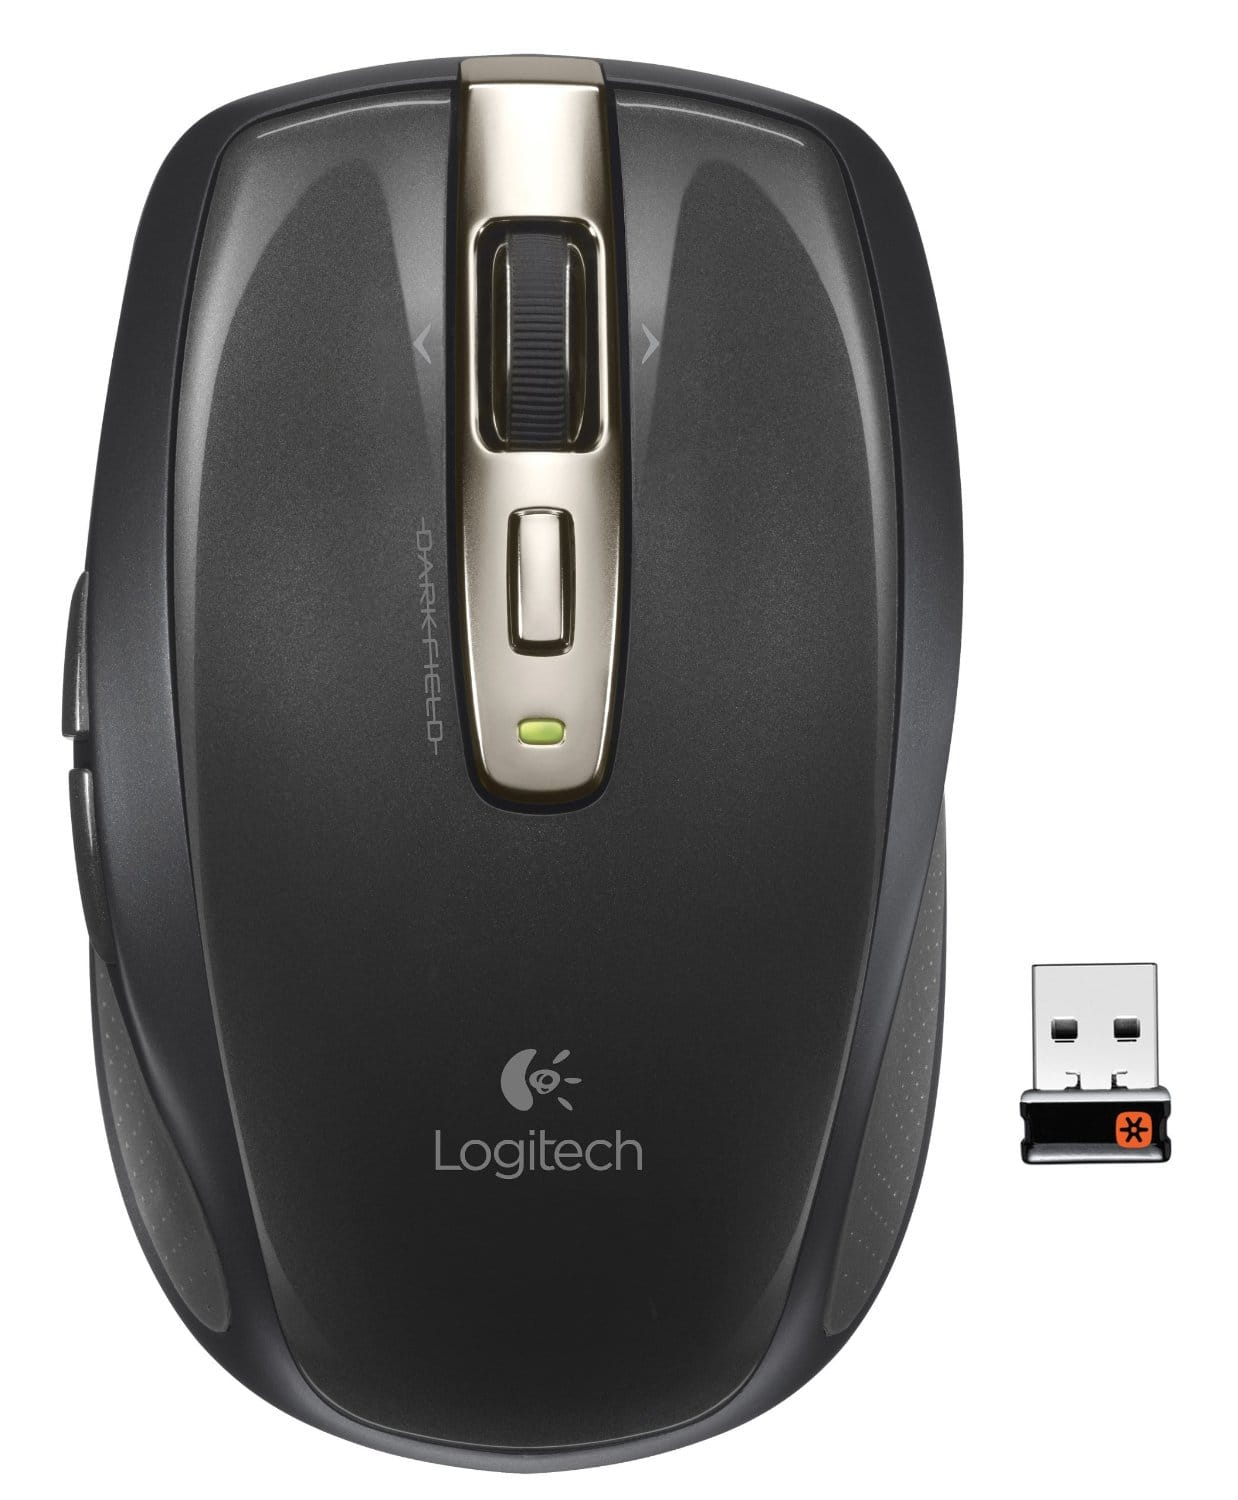 Logitech MX Anywhere Wireless Mouse $20 at Sams Club